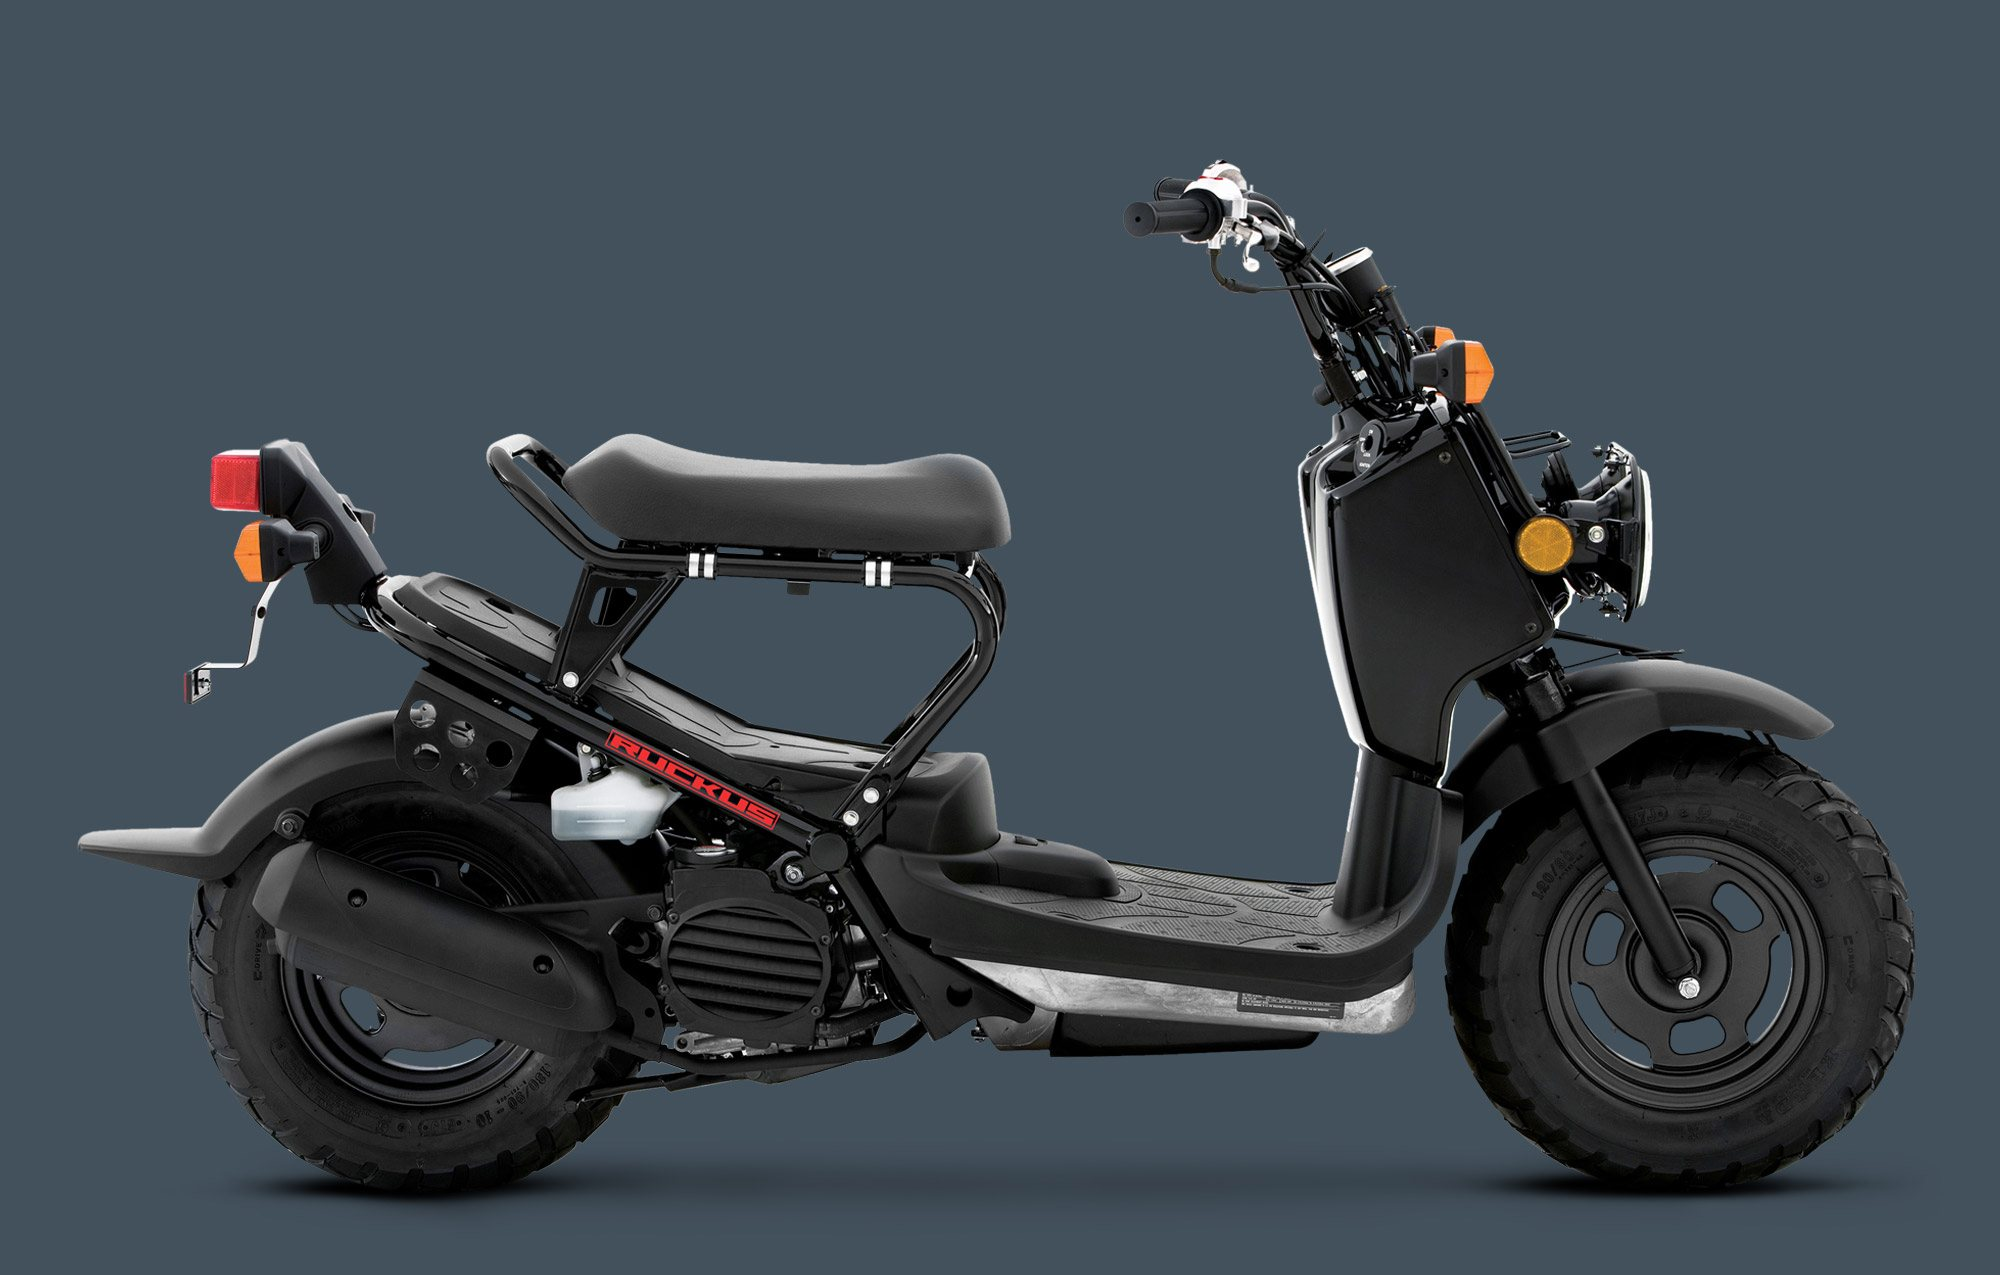 Honda Motorcycle Scooter 2017 New And Used Honda Motorcycles For Sale